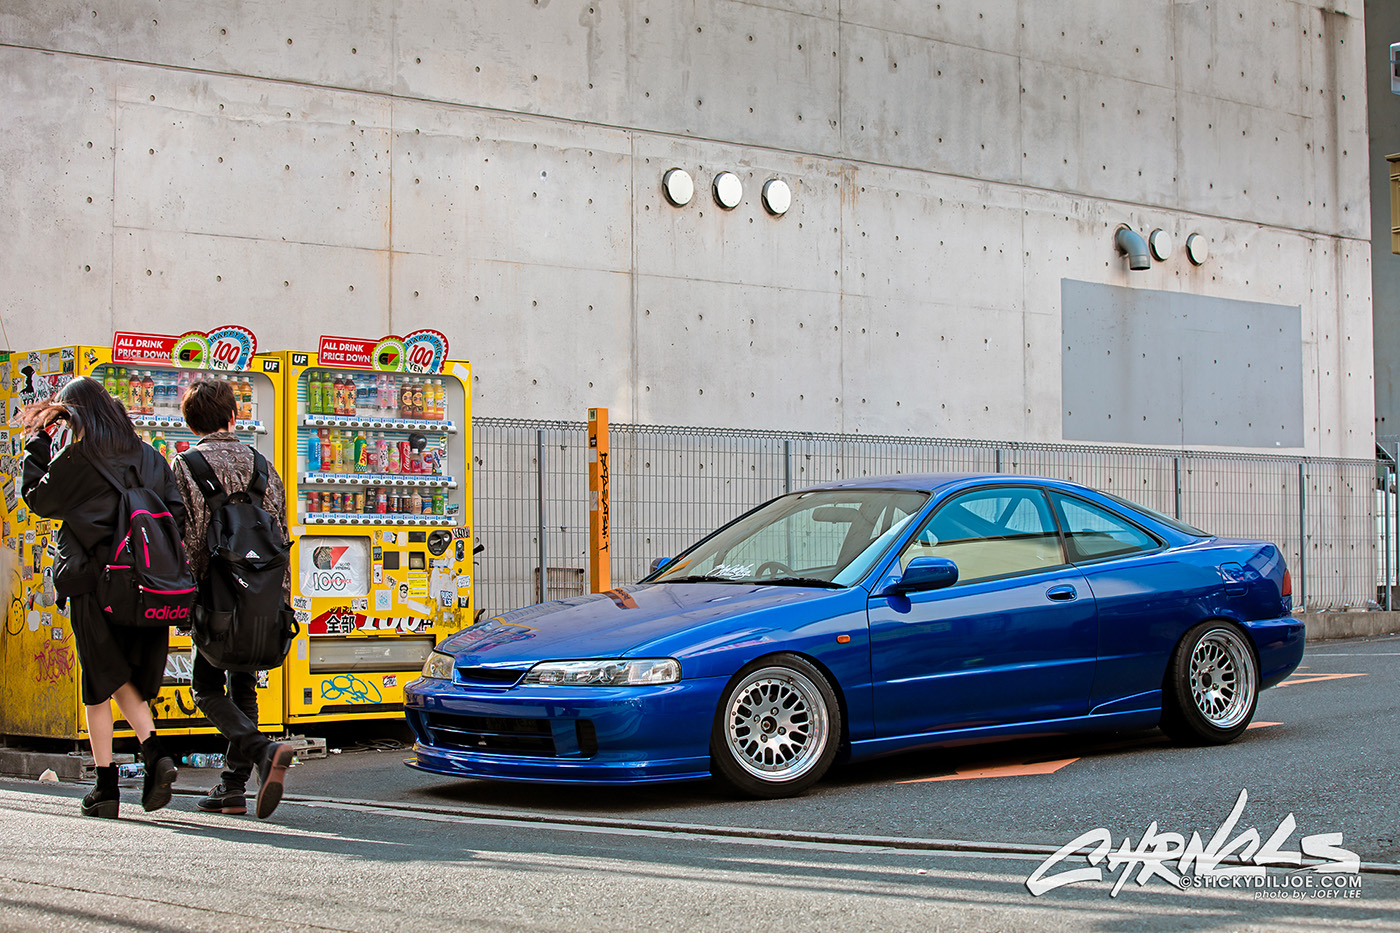 Unfeatured: The Exceed Japan Integra Type R…